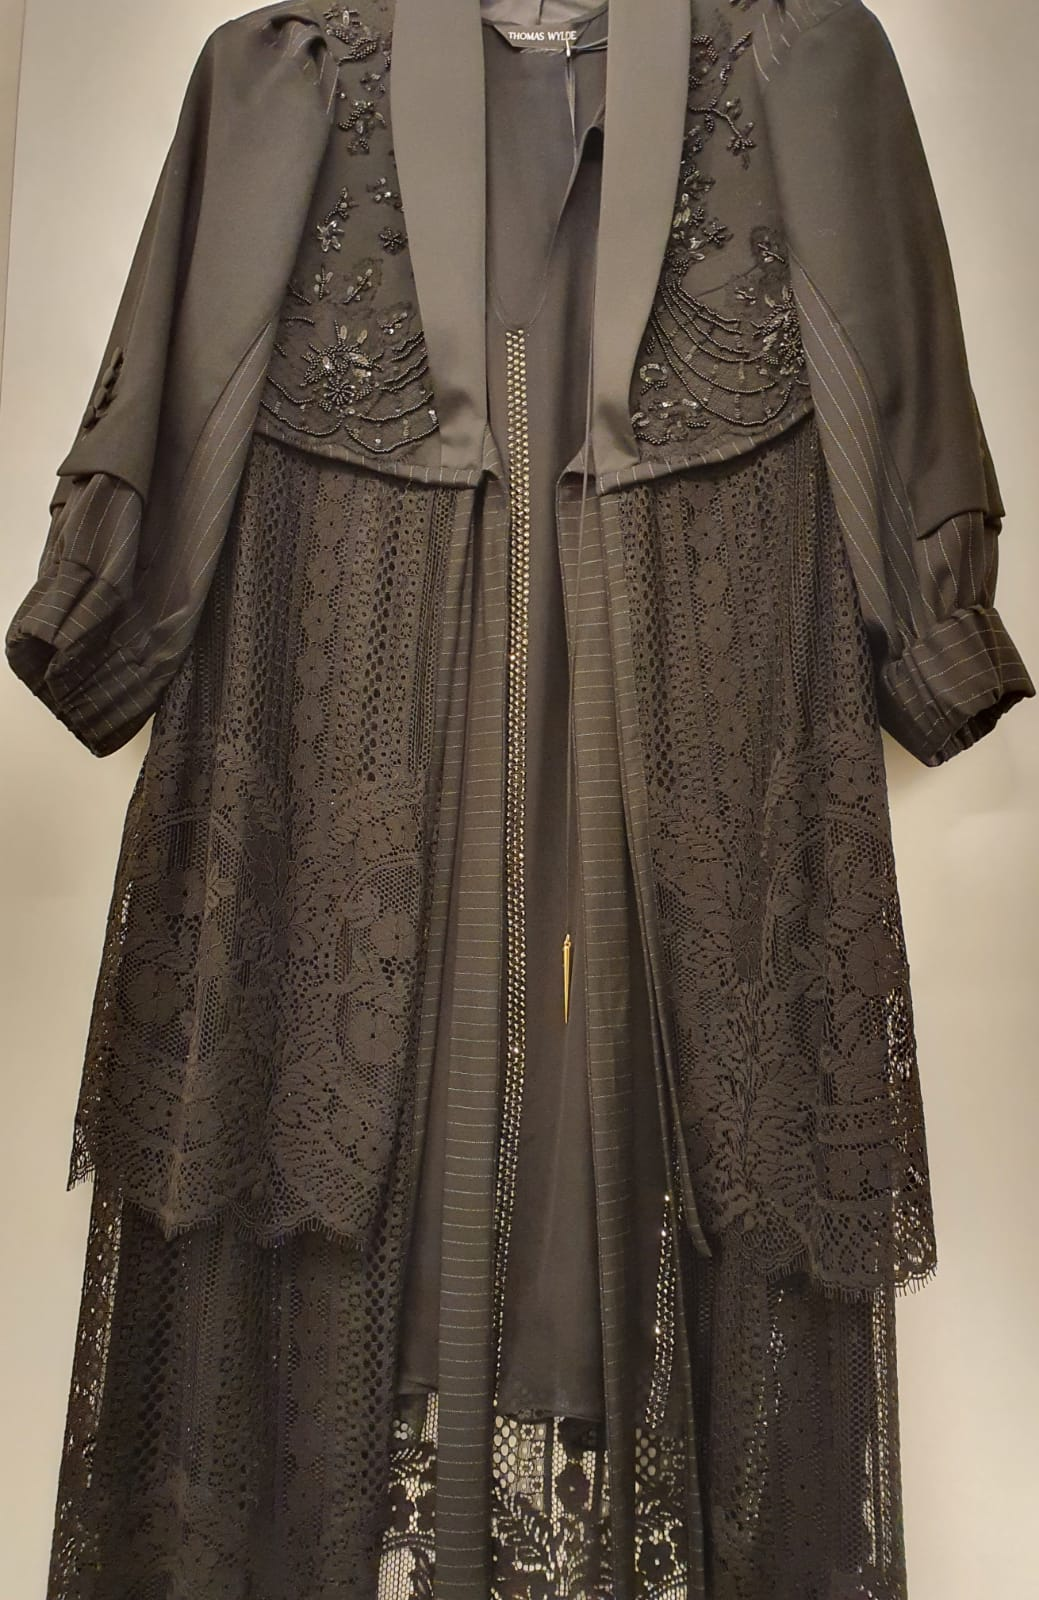 DONNA Les Boutiques - Dress with Coatdress lace and embroidery